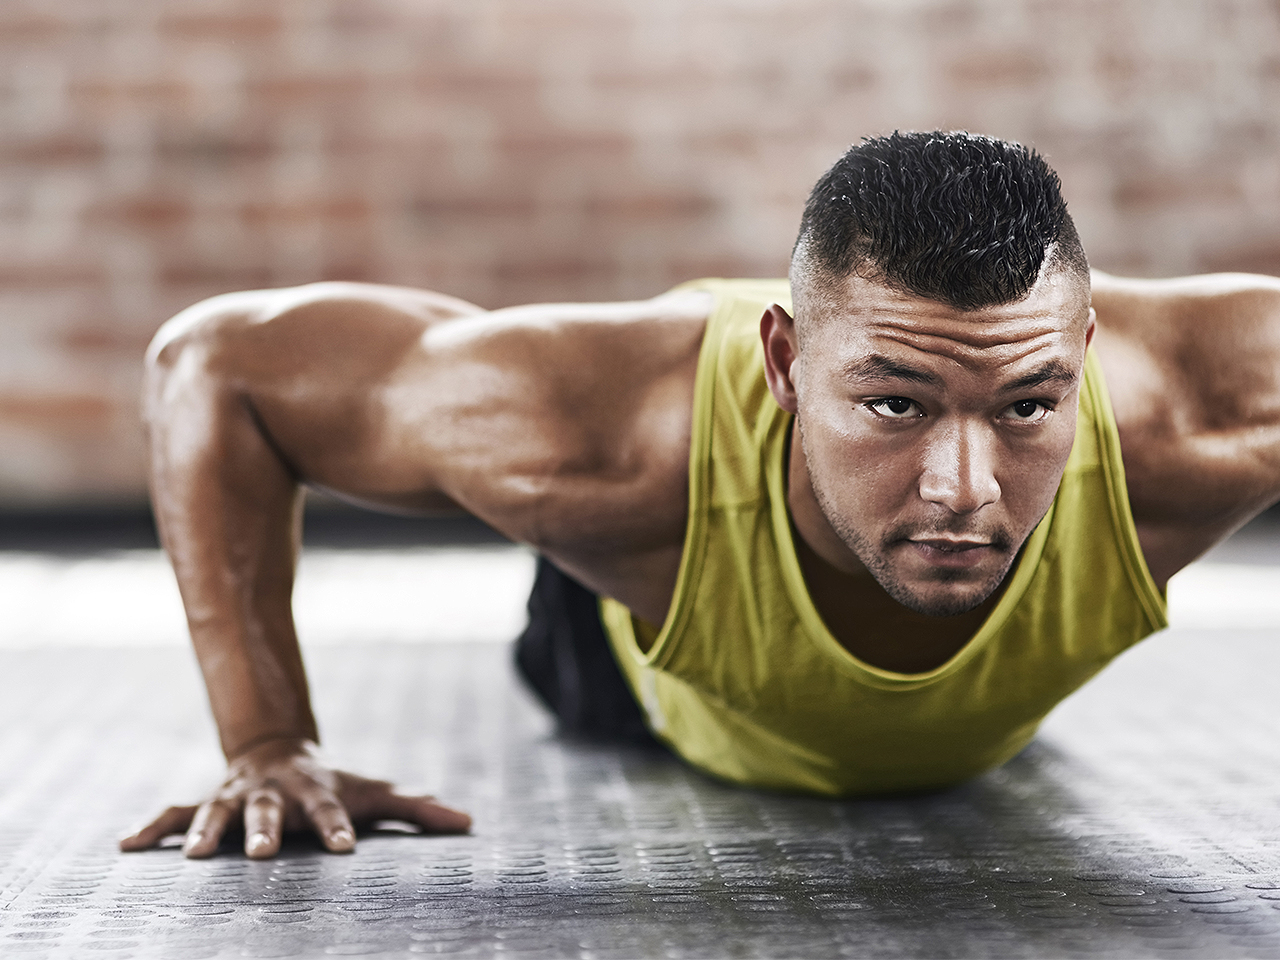 The pullup-pushup workout routine